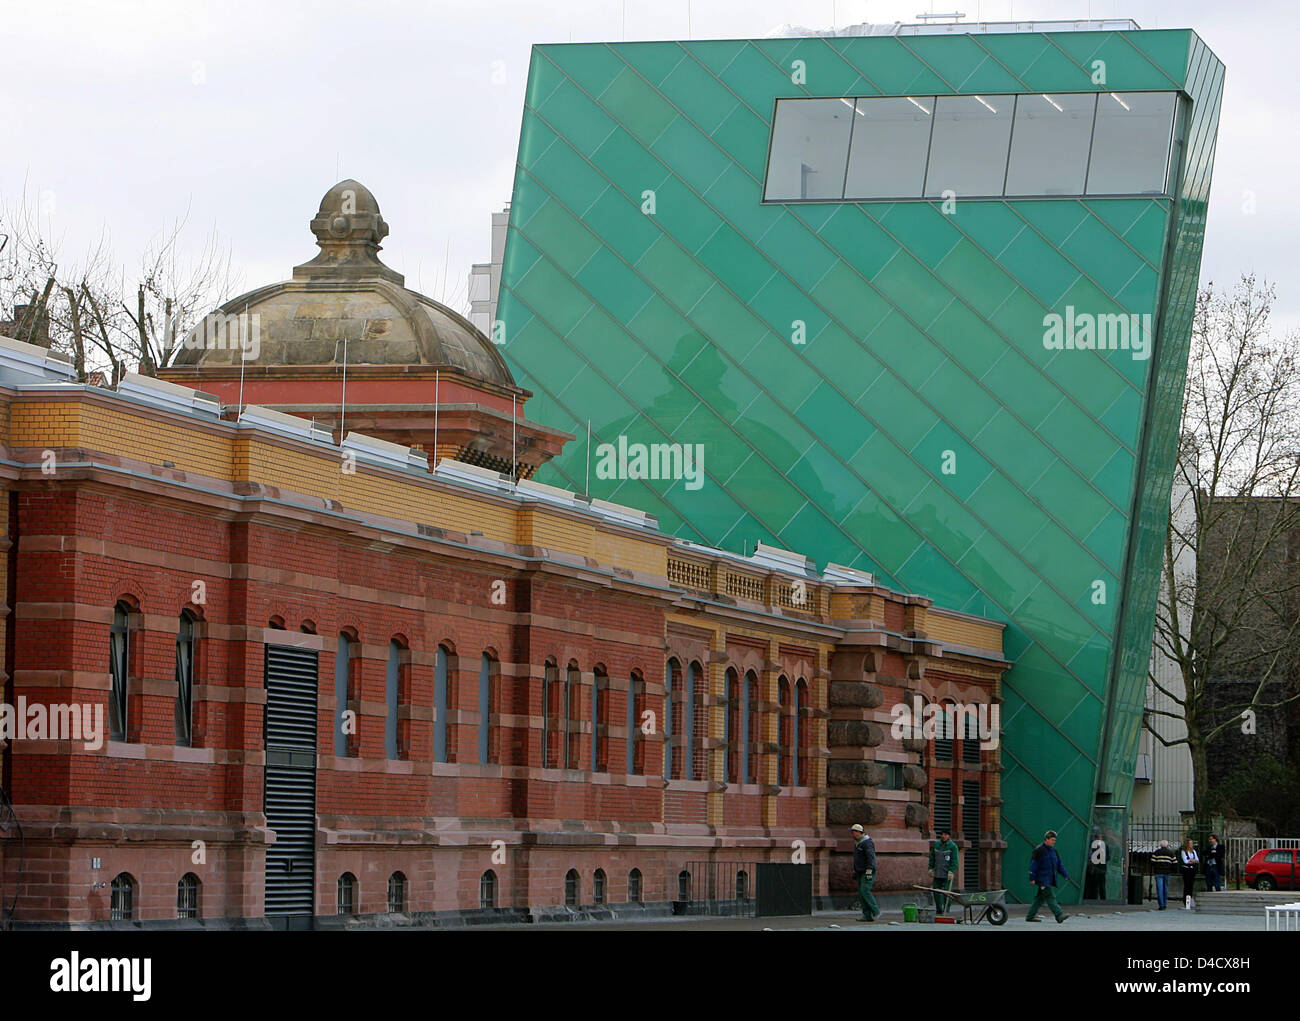 New and old architecture combined at the new art hall of Mainz, Germany, 27 February 2008. The exhibition hall forms - Stock Image